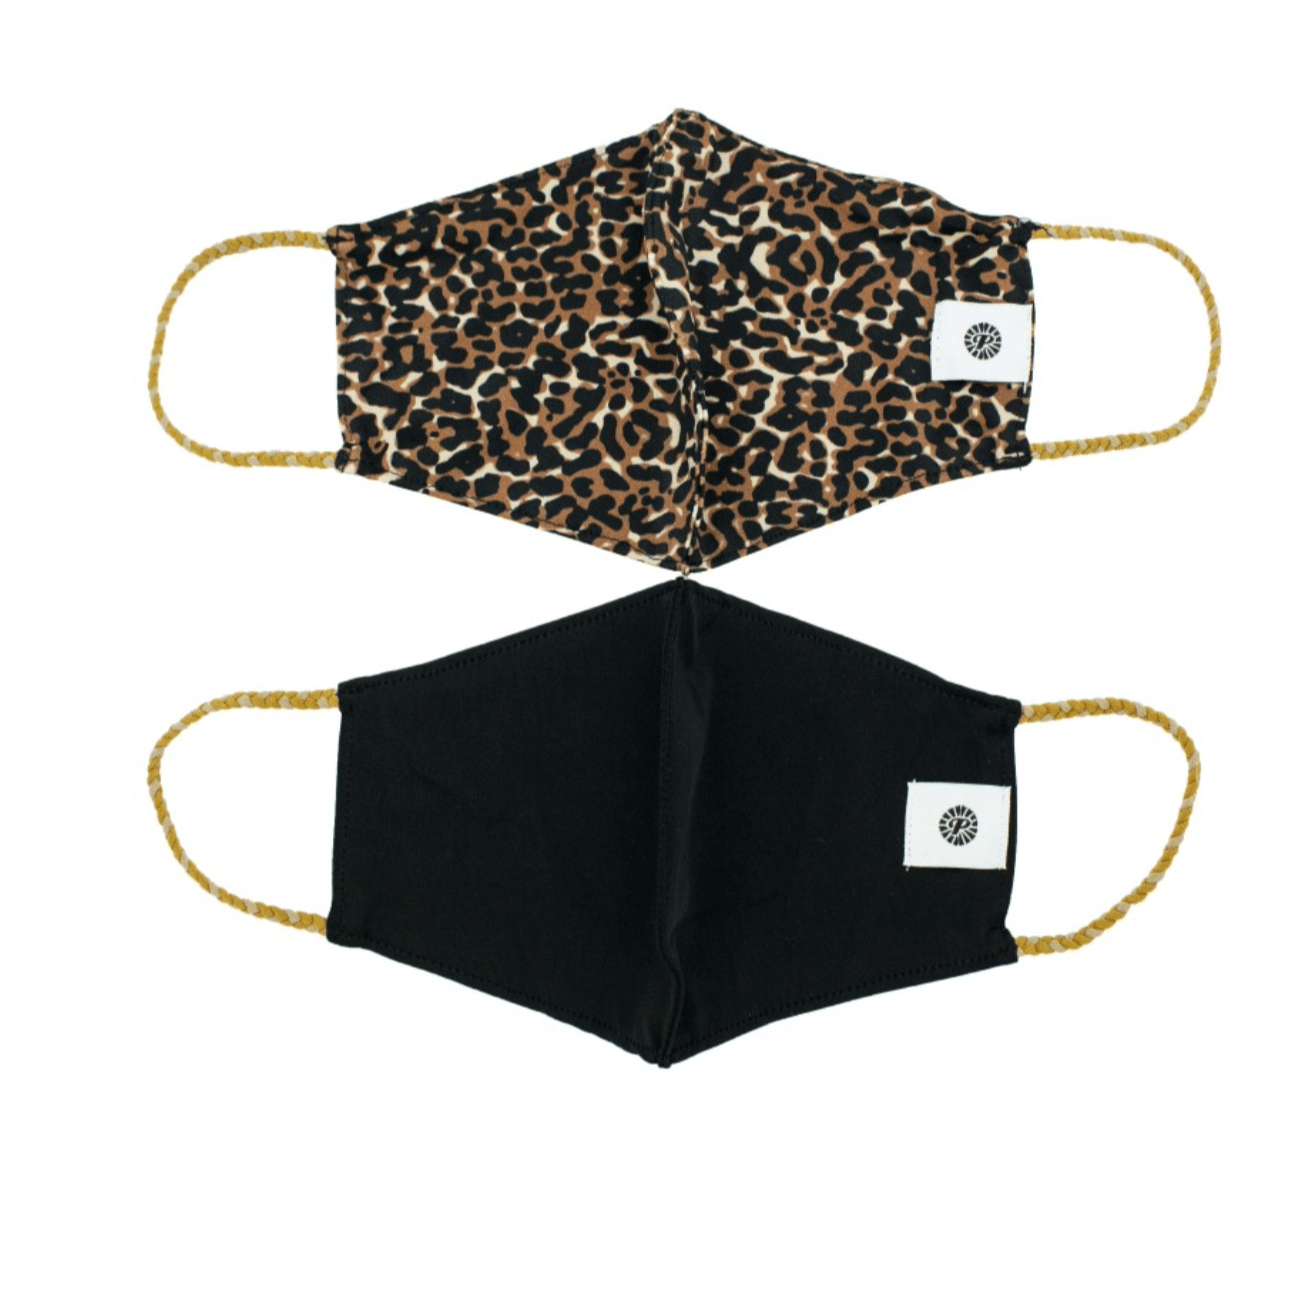 Leopard w/Black Solid Pom Face Covering 2 Pack